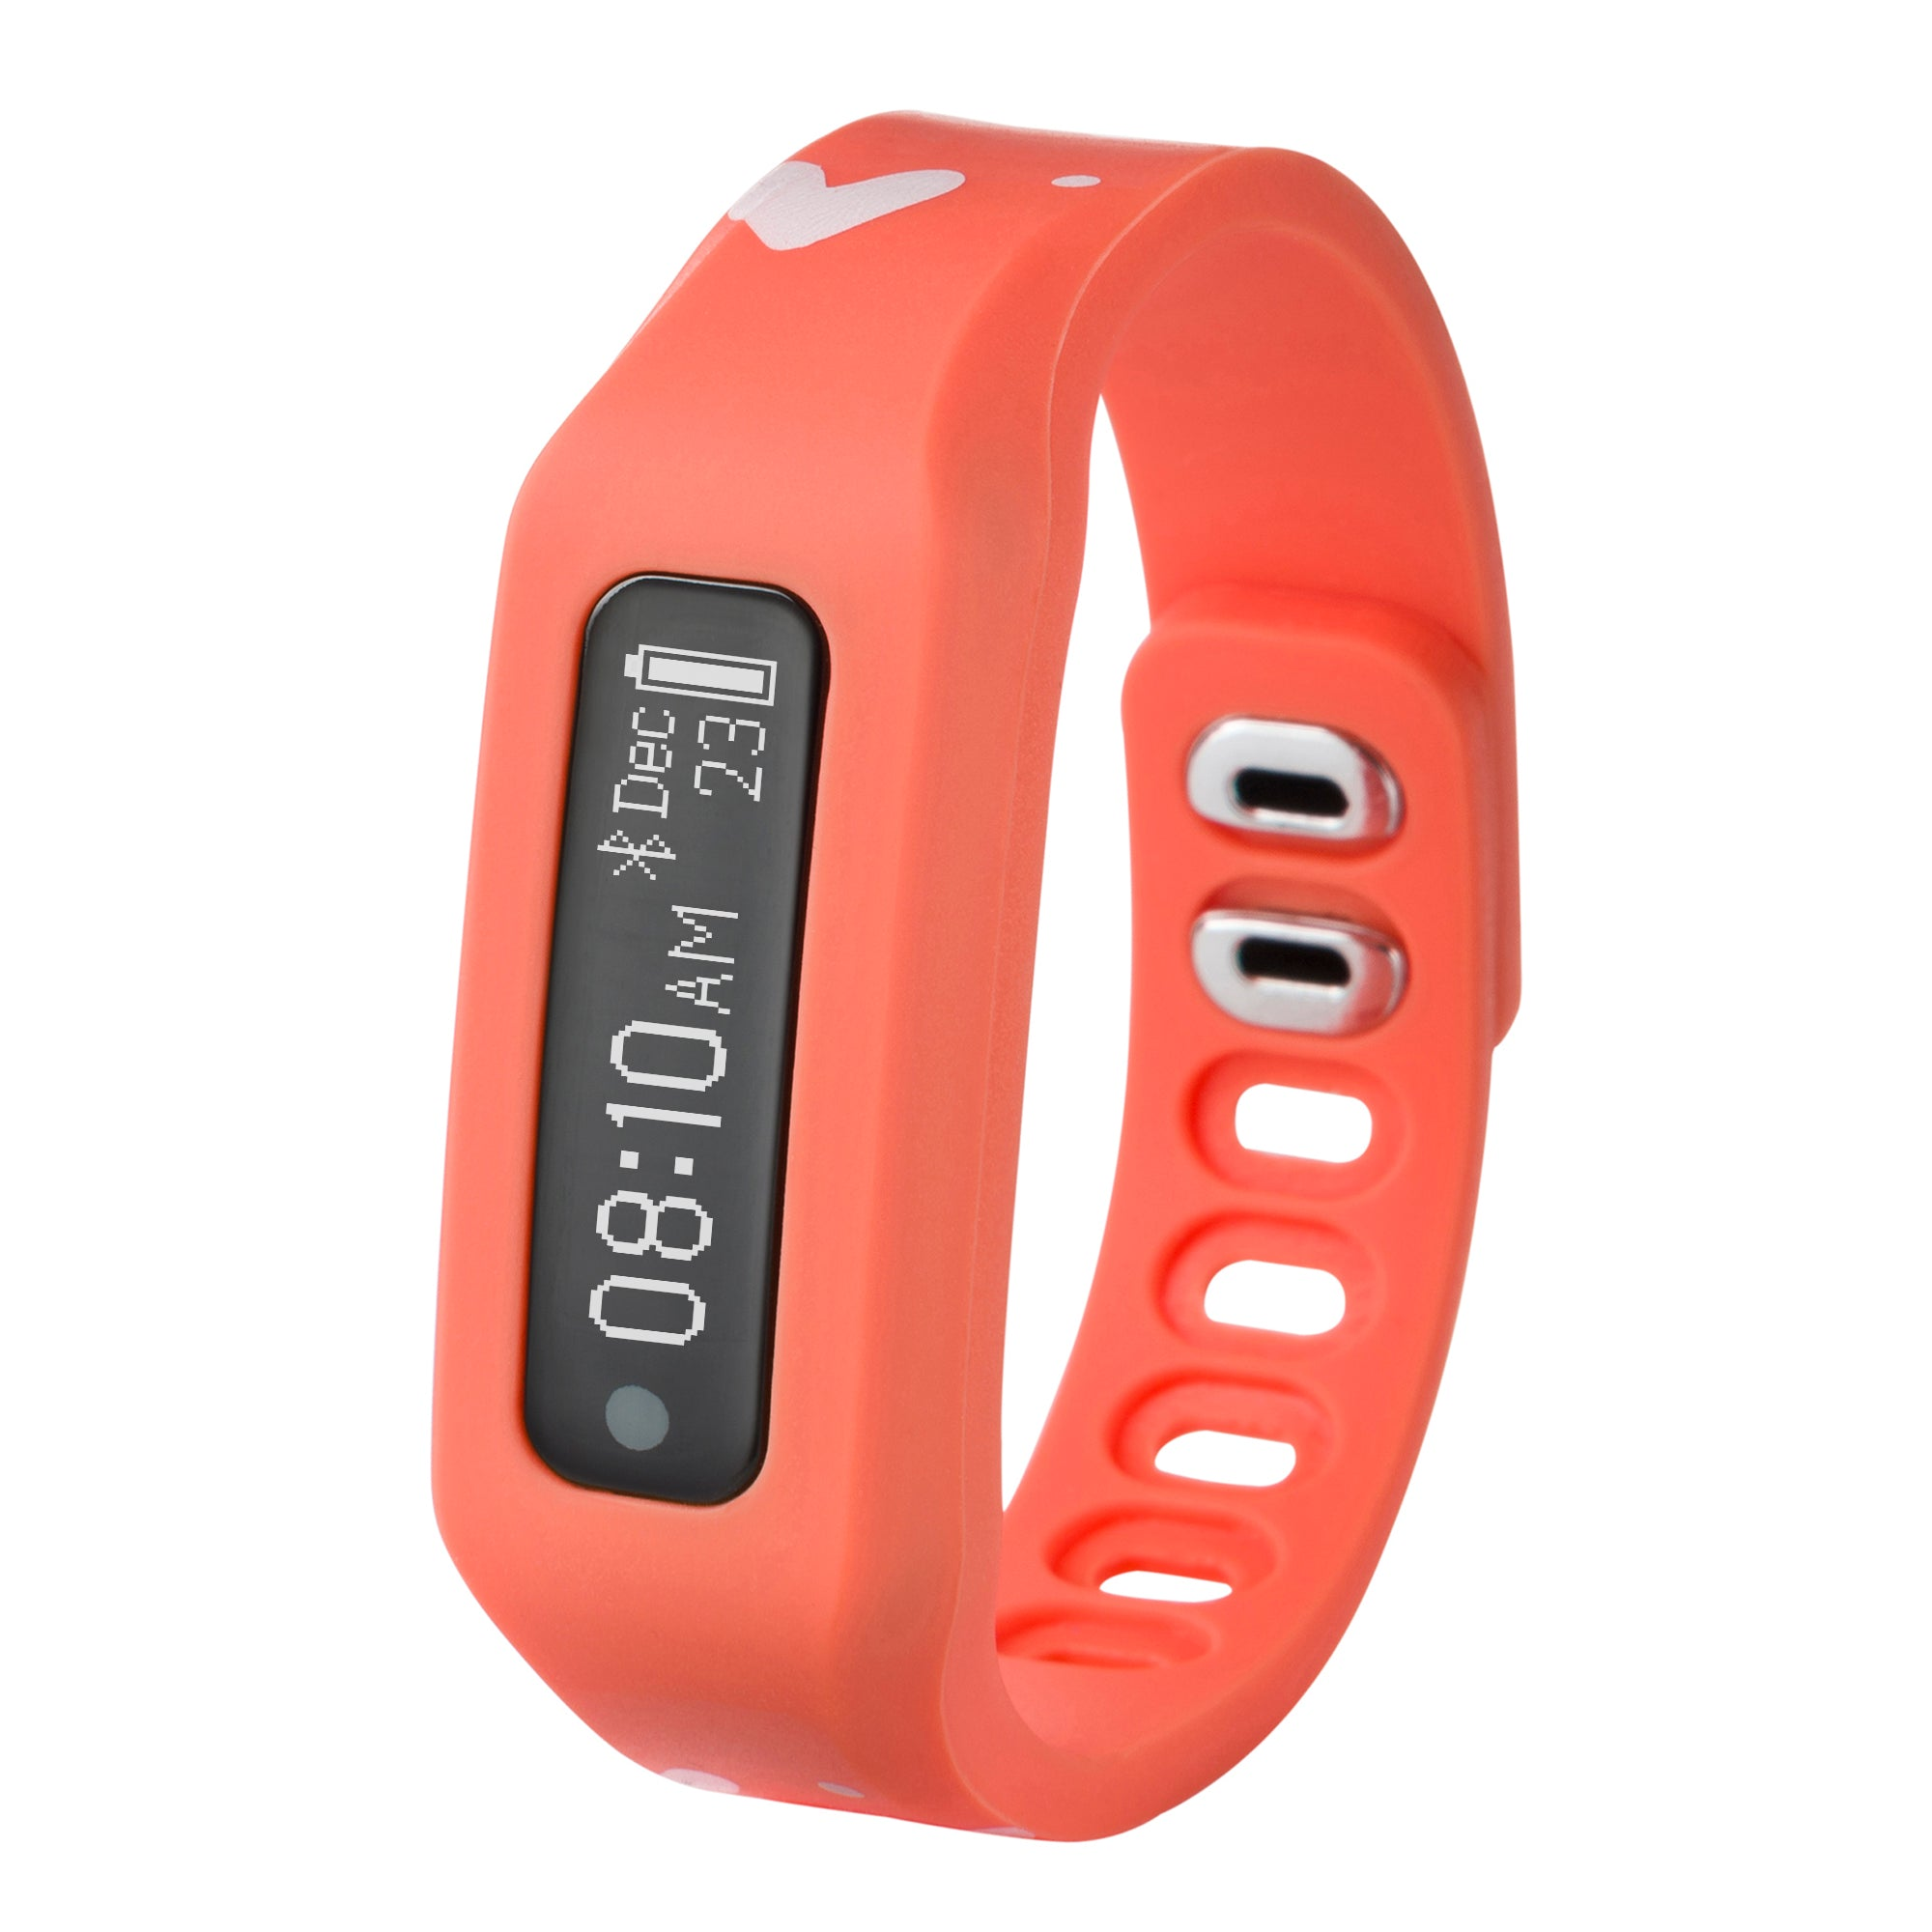 NUBAND JR CHAMPS_PINK ACTIVITY AND SLEEP TRACKER